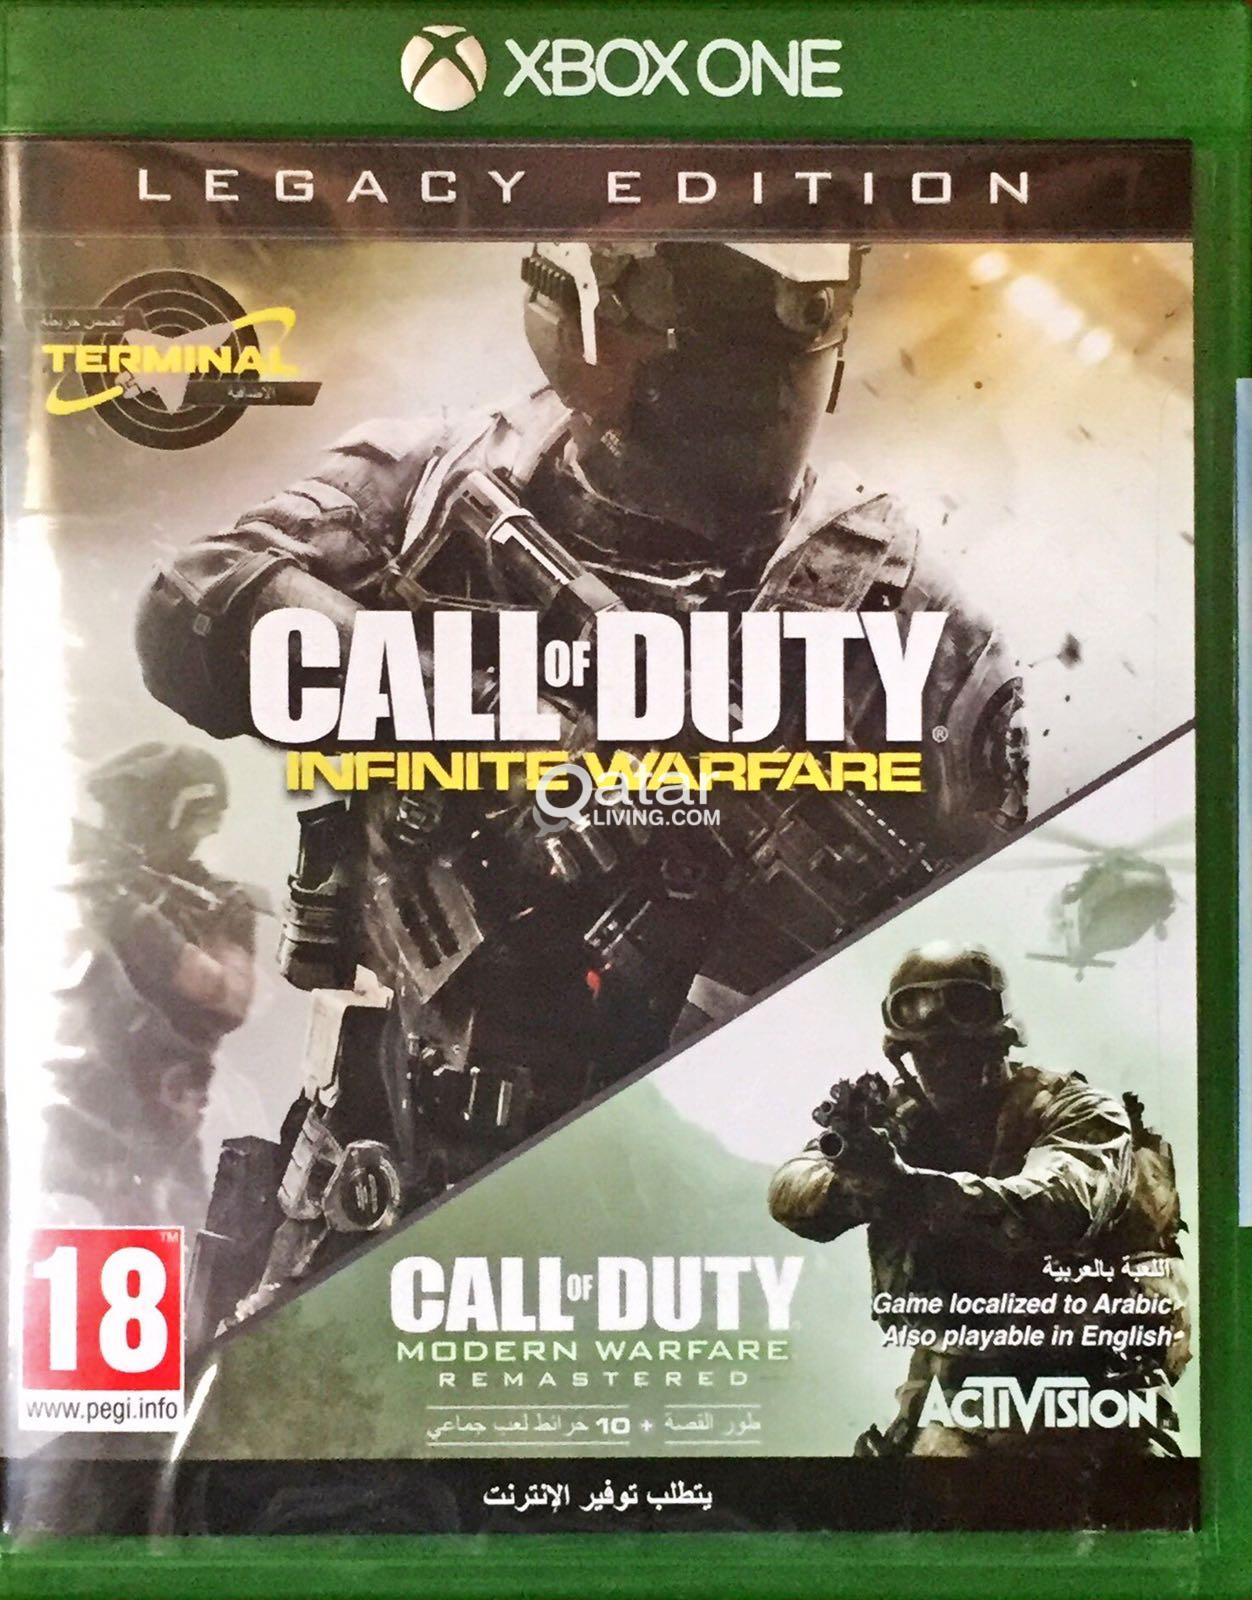 Call Of duty Legacy Edition XBOX-ONE Xbox one xboxone